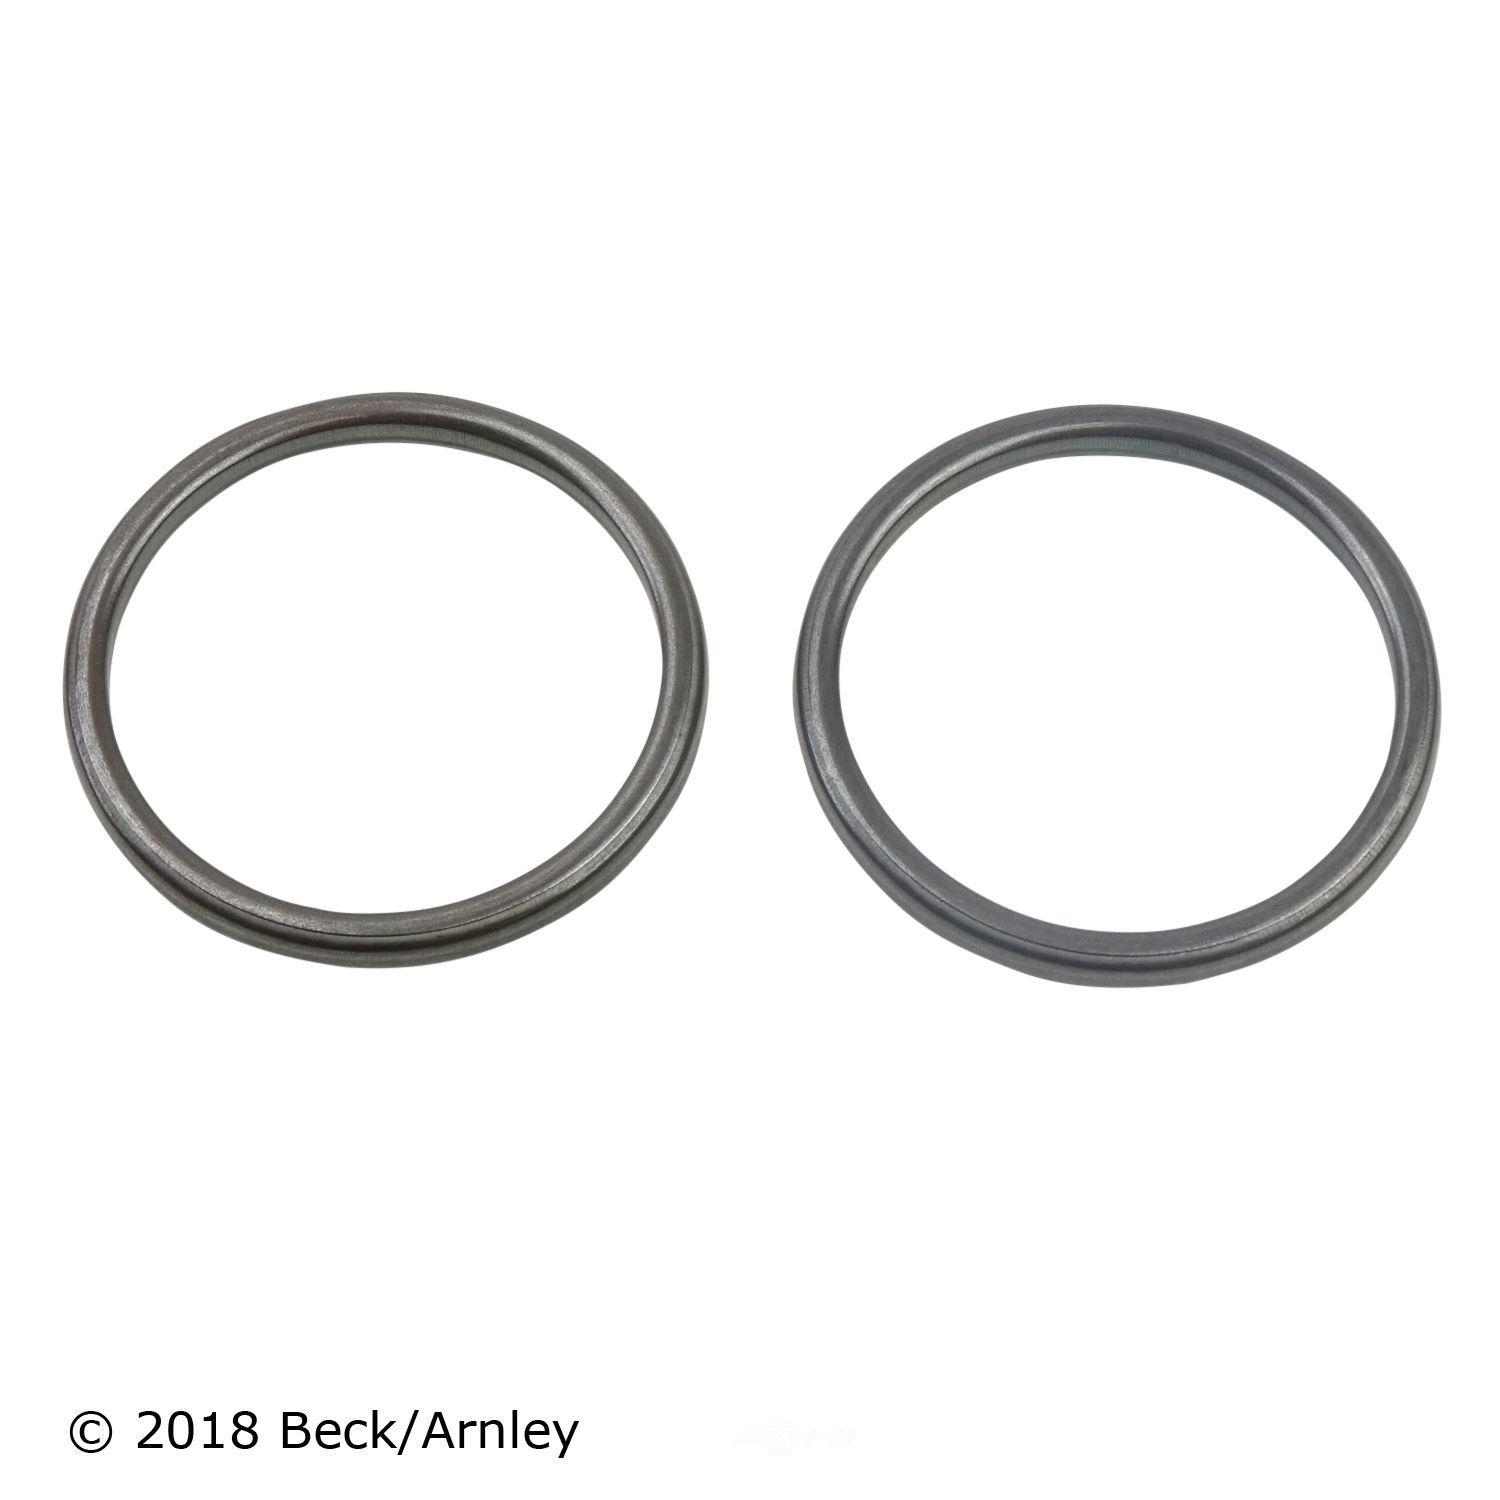 Exhaust Pipe to Manifold Gasket fits 1988-2001 Honda